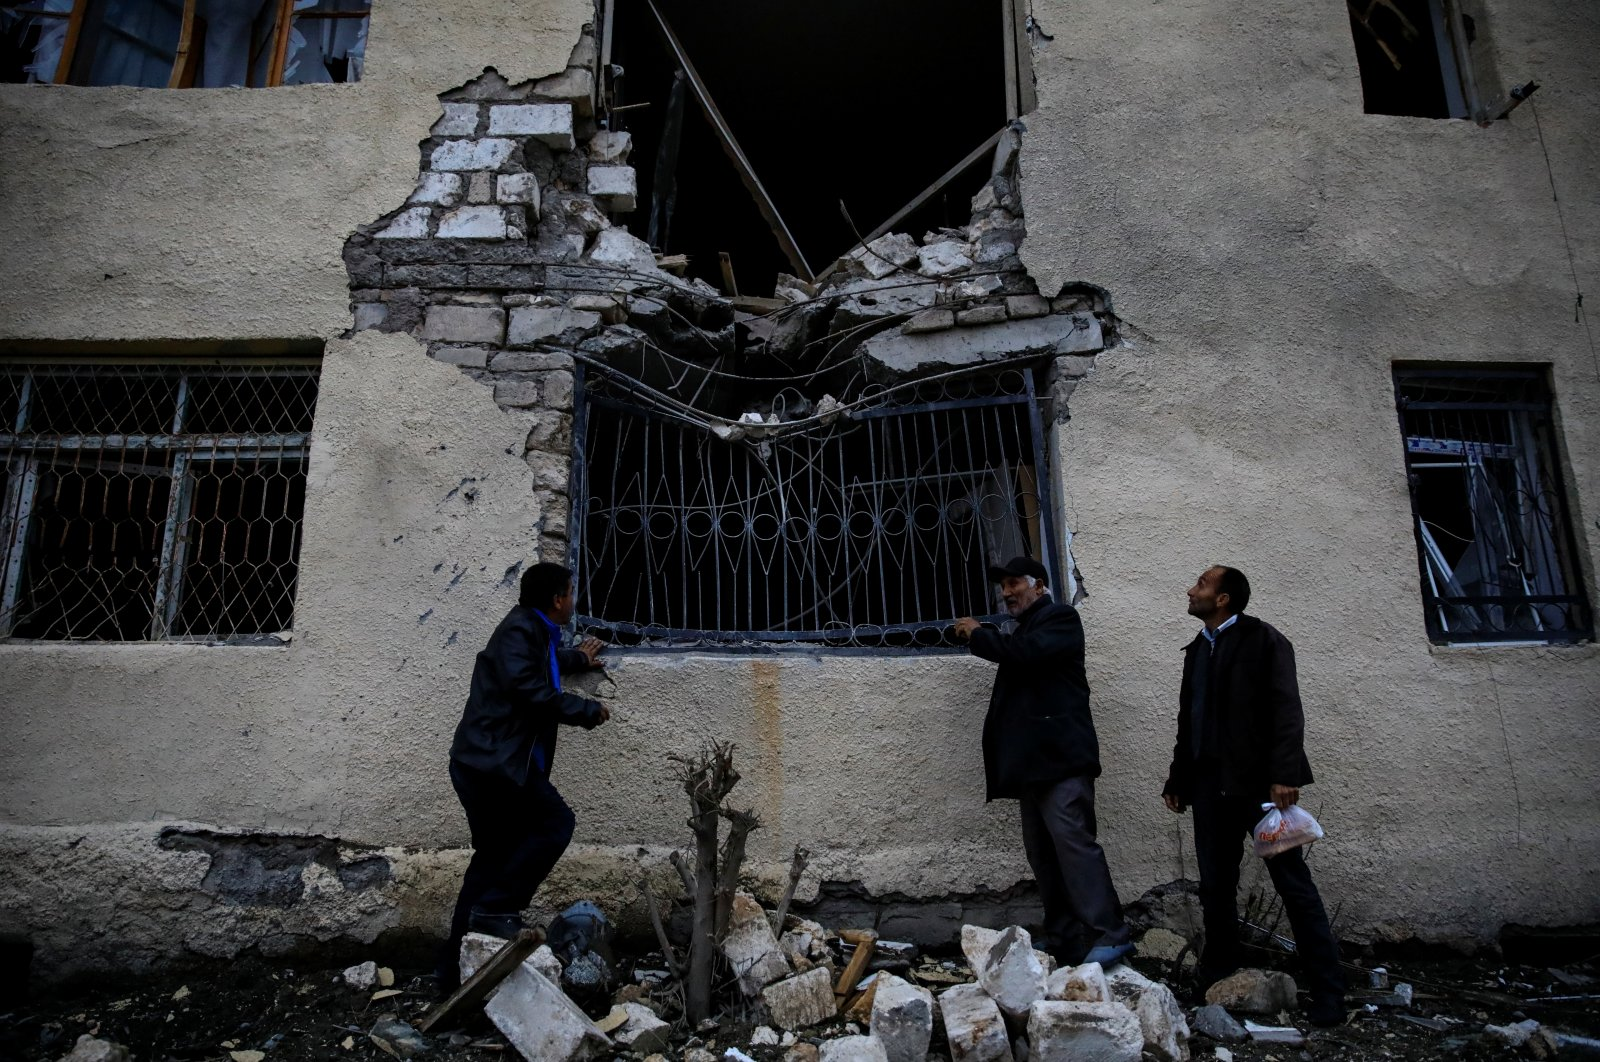 Local residents stand in front of their damaged home hit by artillery fire during the fighting over Nagorno-Karabakh in the city of Terter, Azerbaijan, Oct. 6, 2020. (REUTERS Photo)